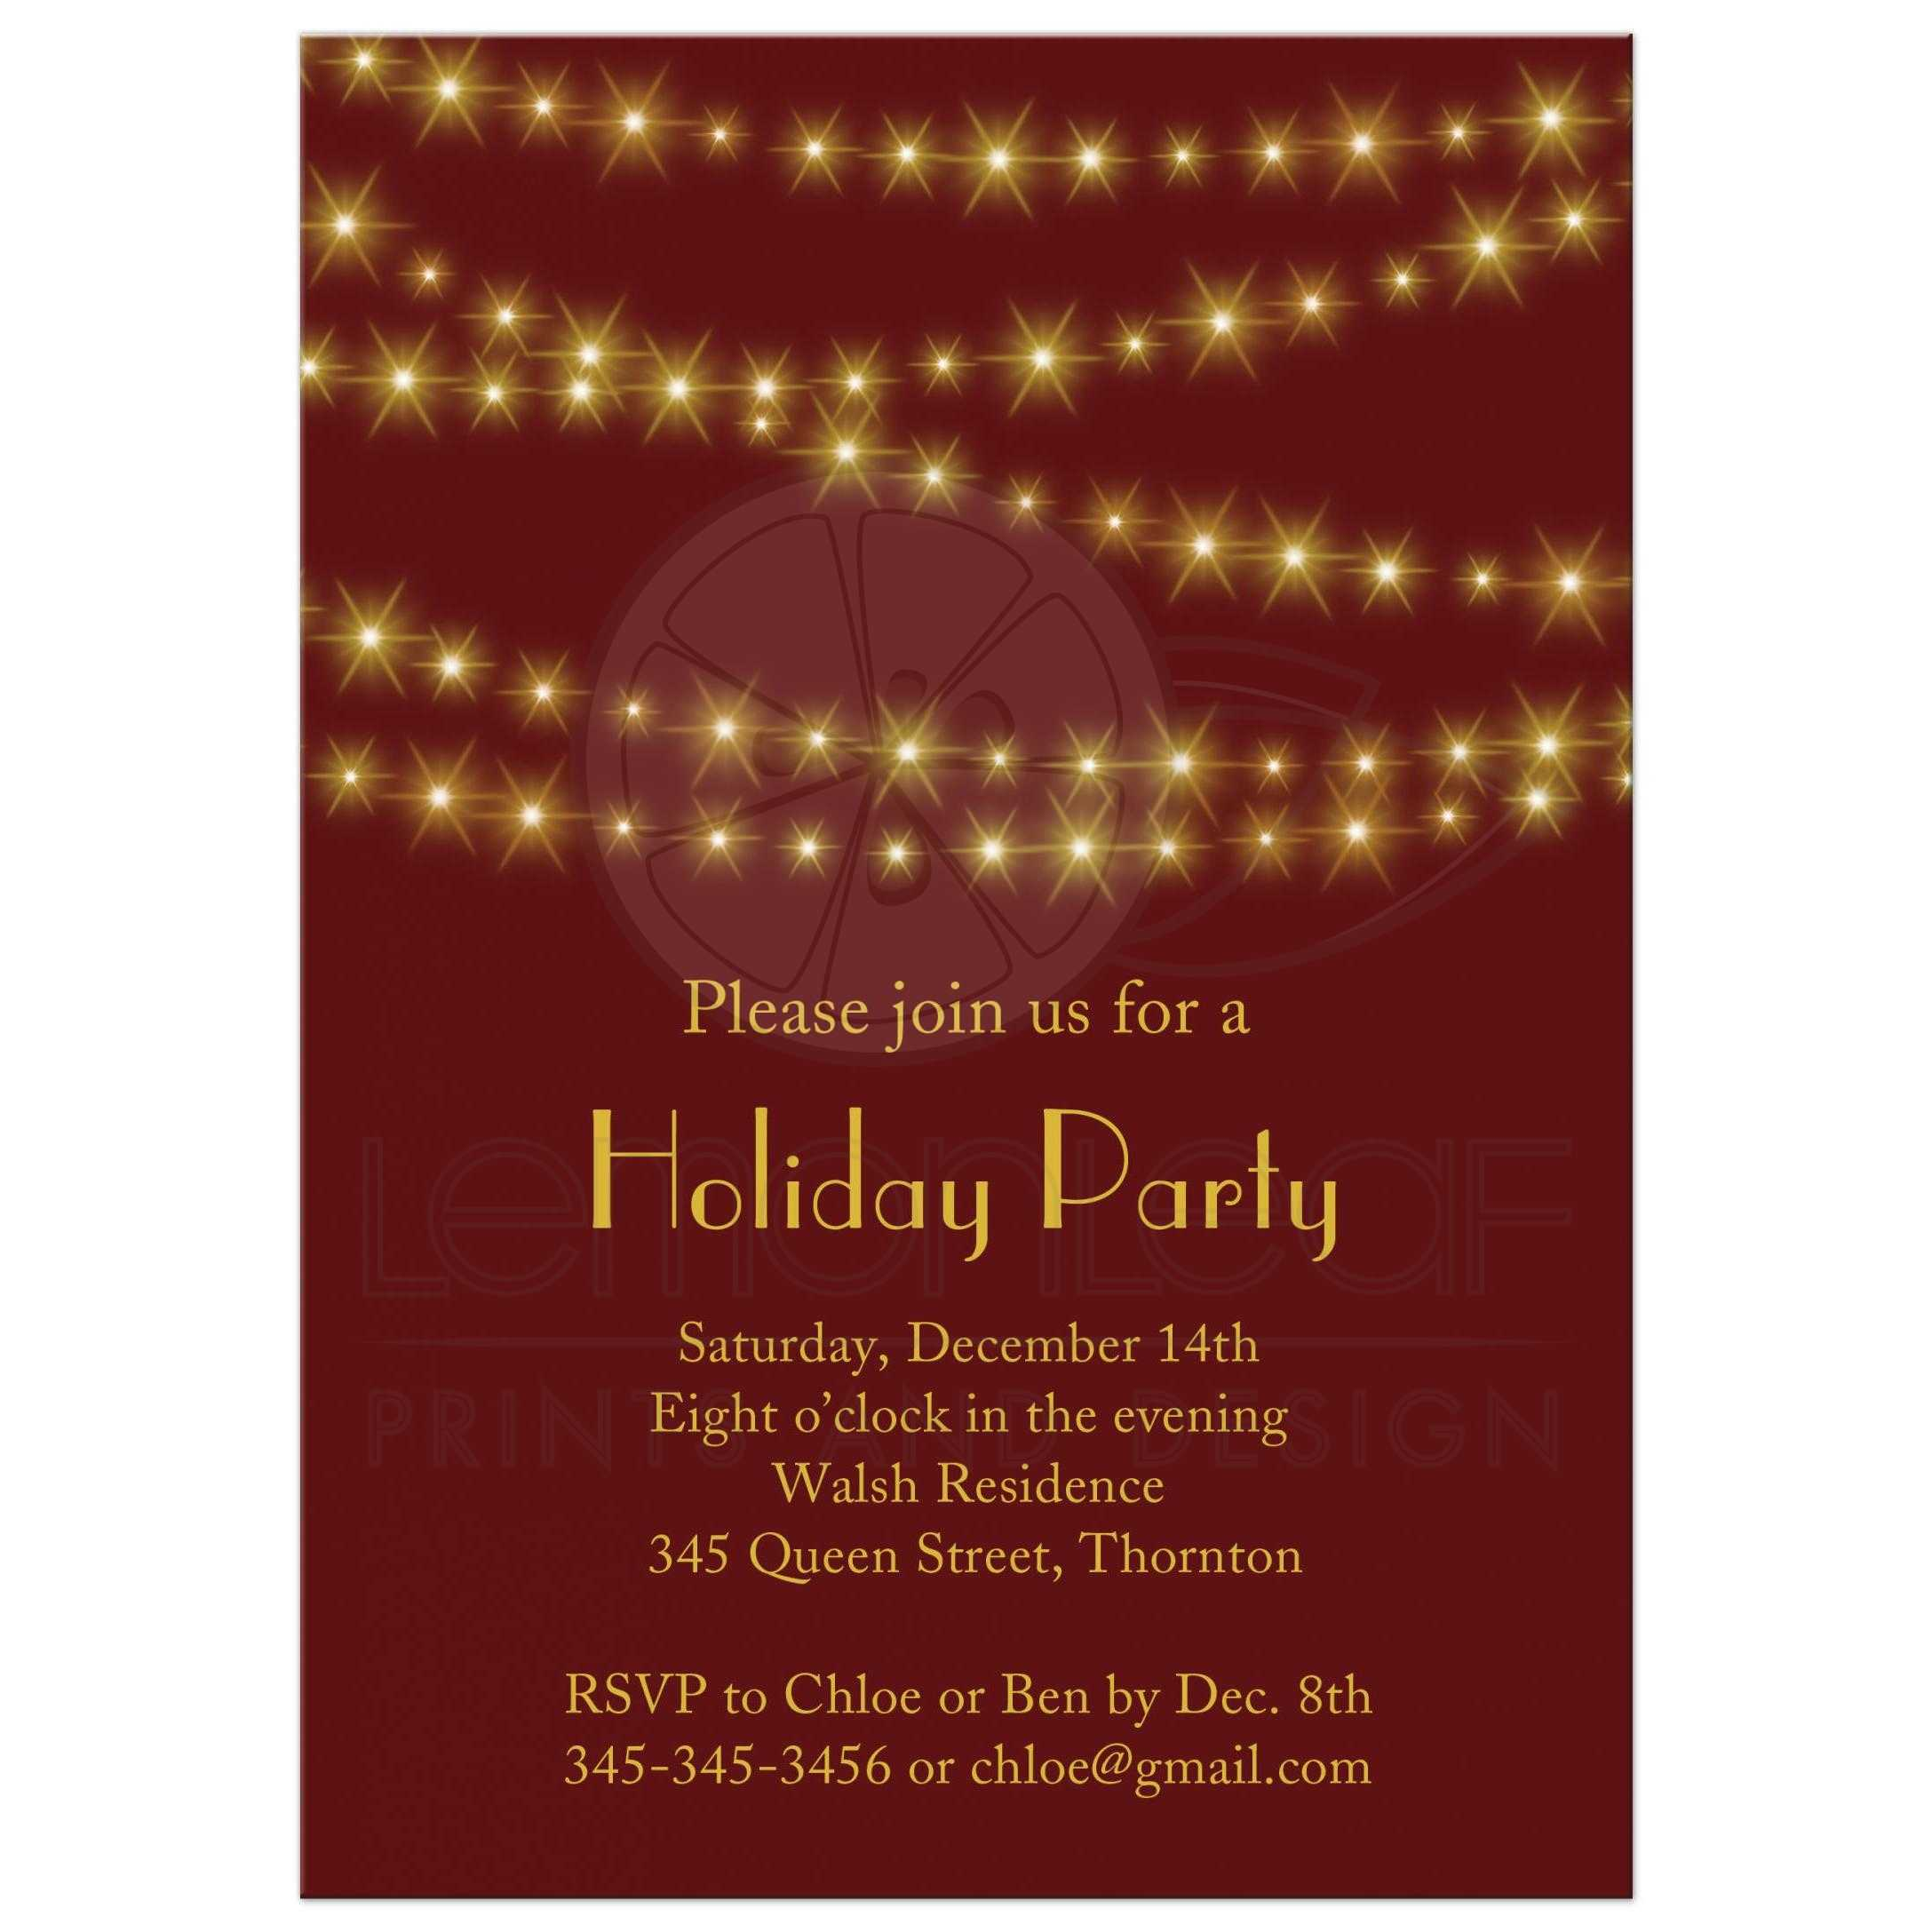 Holiday Party Invitation - Gold Twinkle Lights on Red